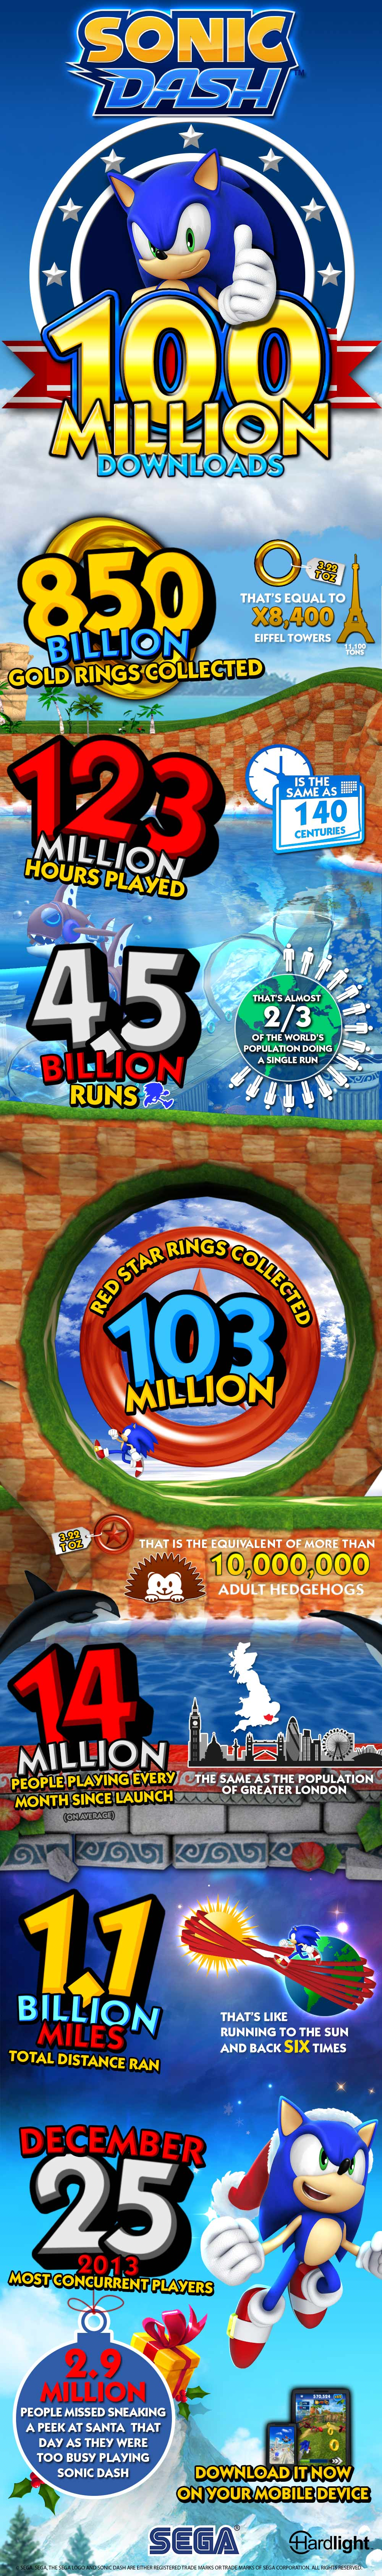 Sega created this infographic to celebrate Sonic Dash's 100 million downloads.